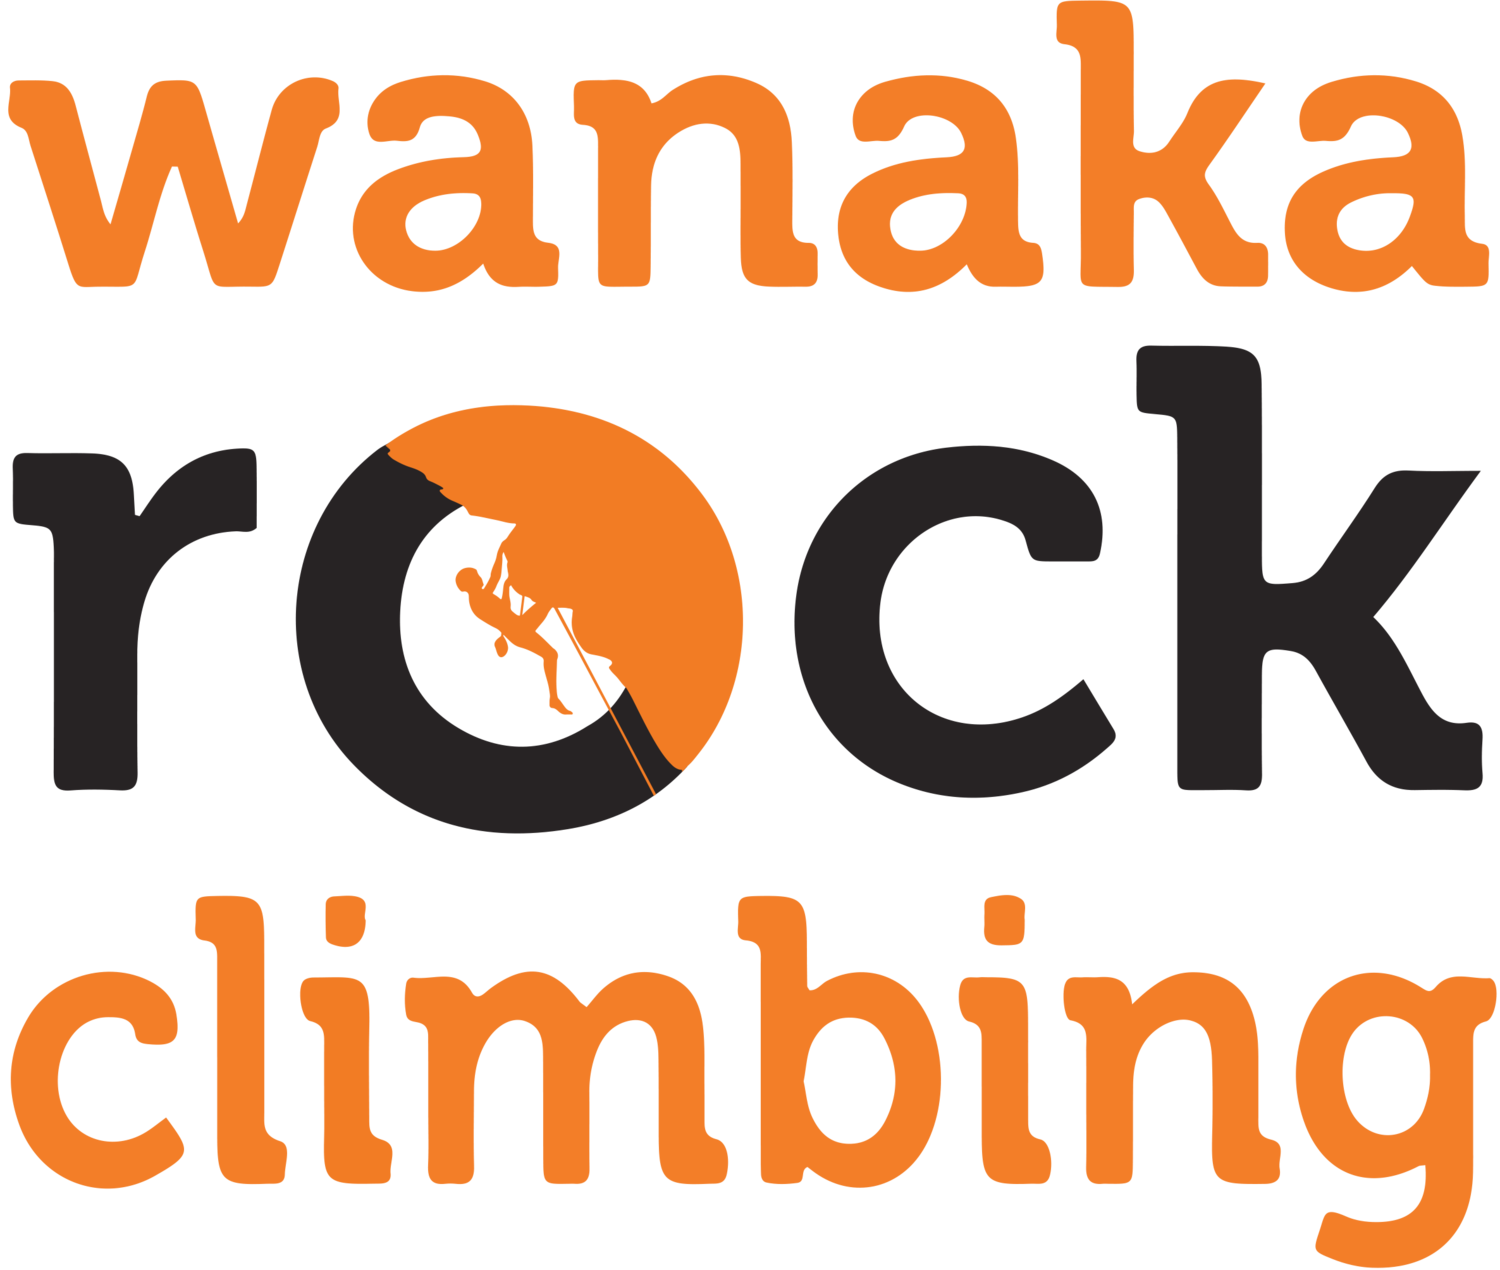 Rock Climbing Guide service in Wanaka & surroundings - Wanaka Rock